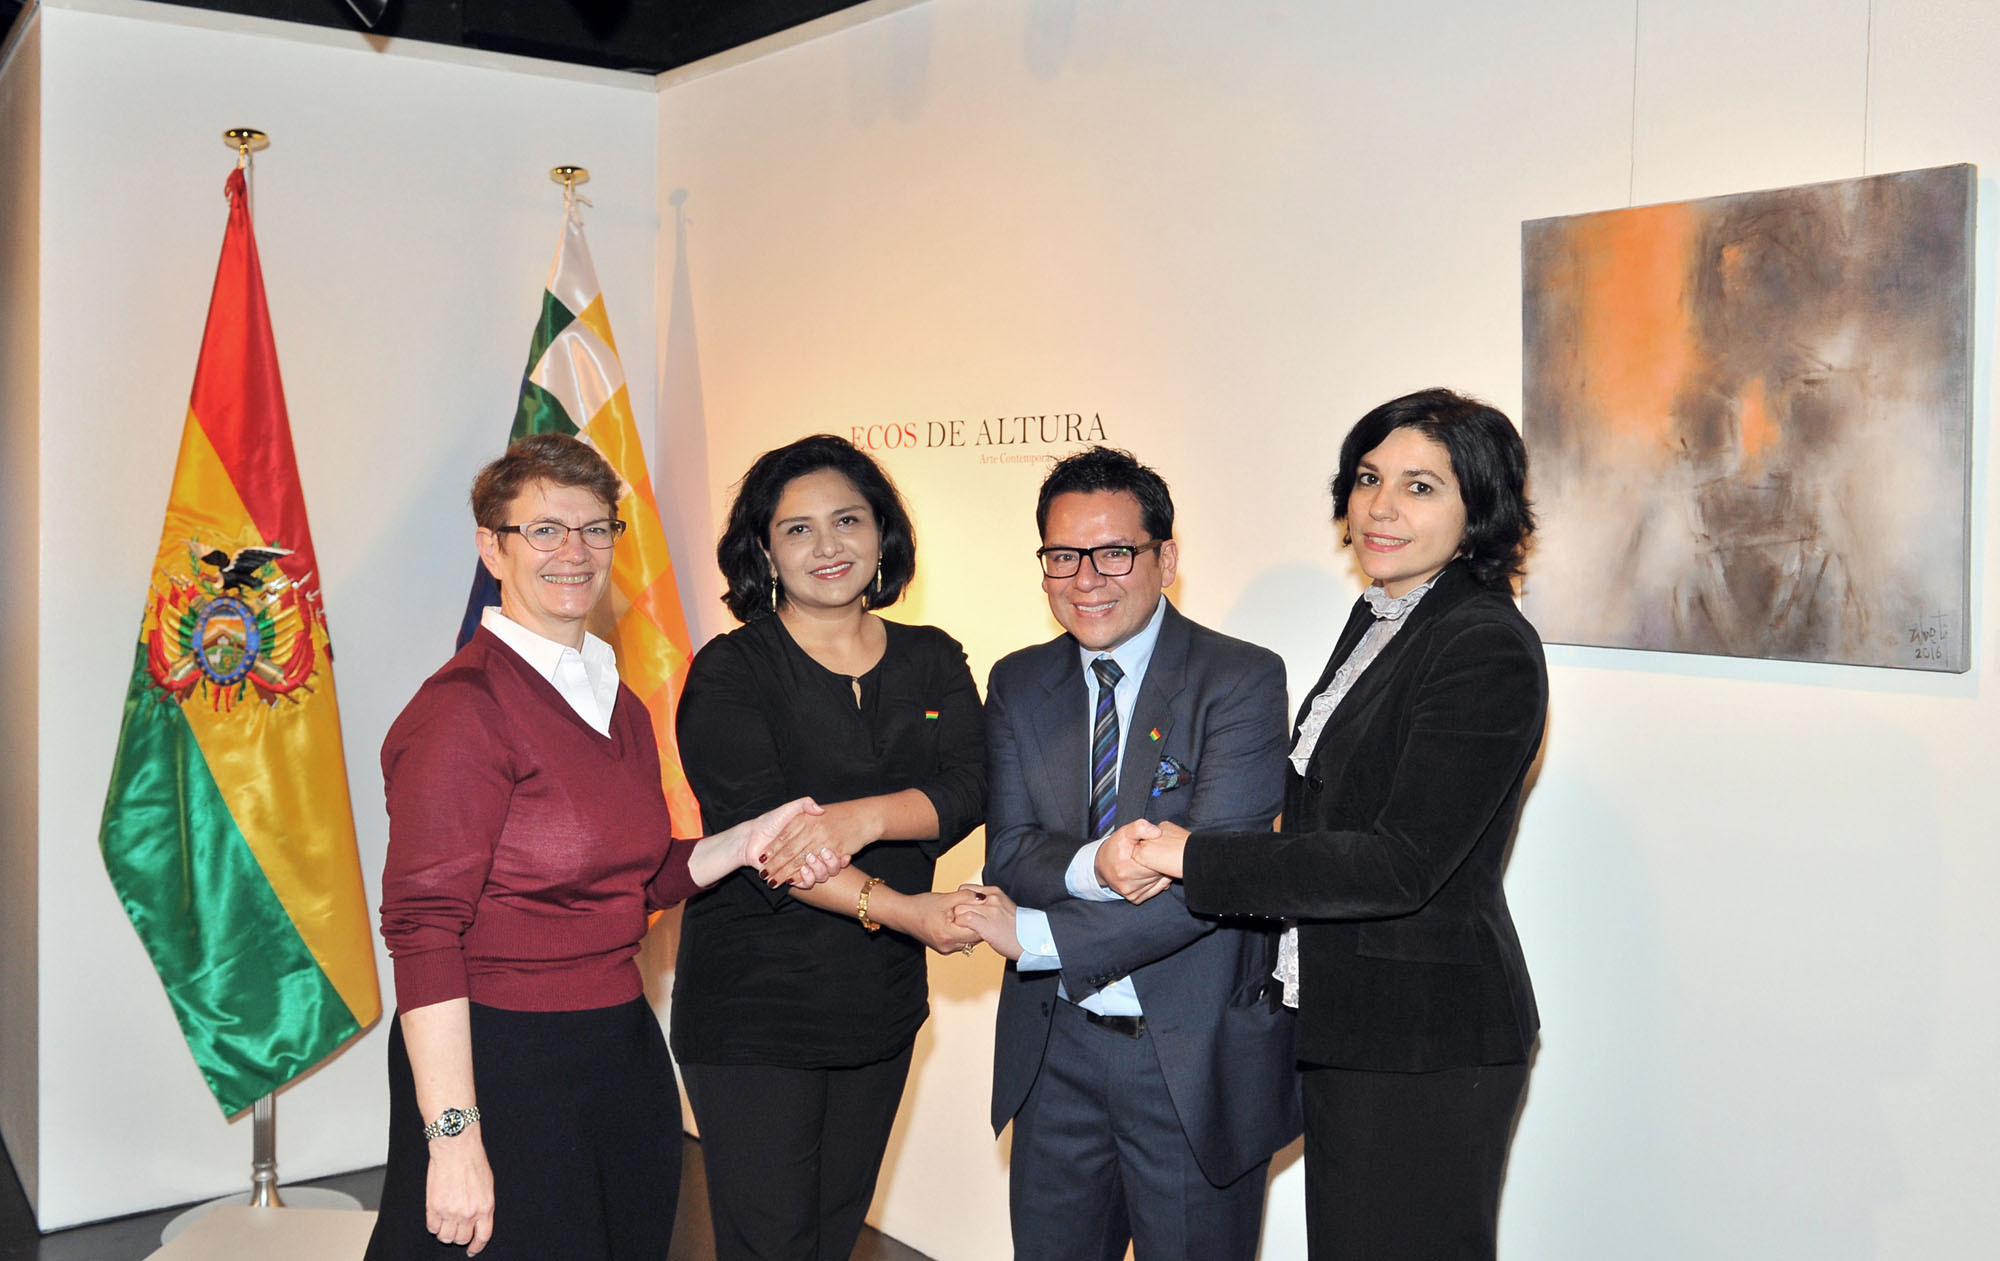 """Bolivia's Charge d'Affaires a.i. Angela Ayllon (second from left), exhibition curator Dante Chumacero (second from right), Instituto Cervantes Tokio administrator Maria Luisa Carranza (left) and Cultural Manager Teresa Iniesta (right) join hands at the opening ceremony of the """"ECOS DE ALTURE: ARTE BOLIVIANO DESDE OTRAS TIERRAS"""" (Echoes from the highlands: Bolivian art from other lands) contemporary art exhibition, which runs through March 22, at Instituto Cervantes Tokio on March 2.   YOSHIAKI MIURA"""